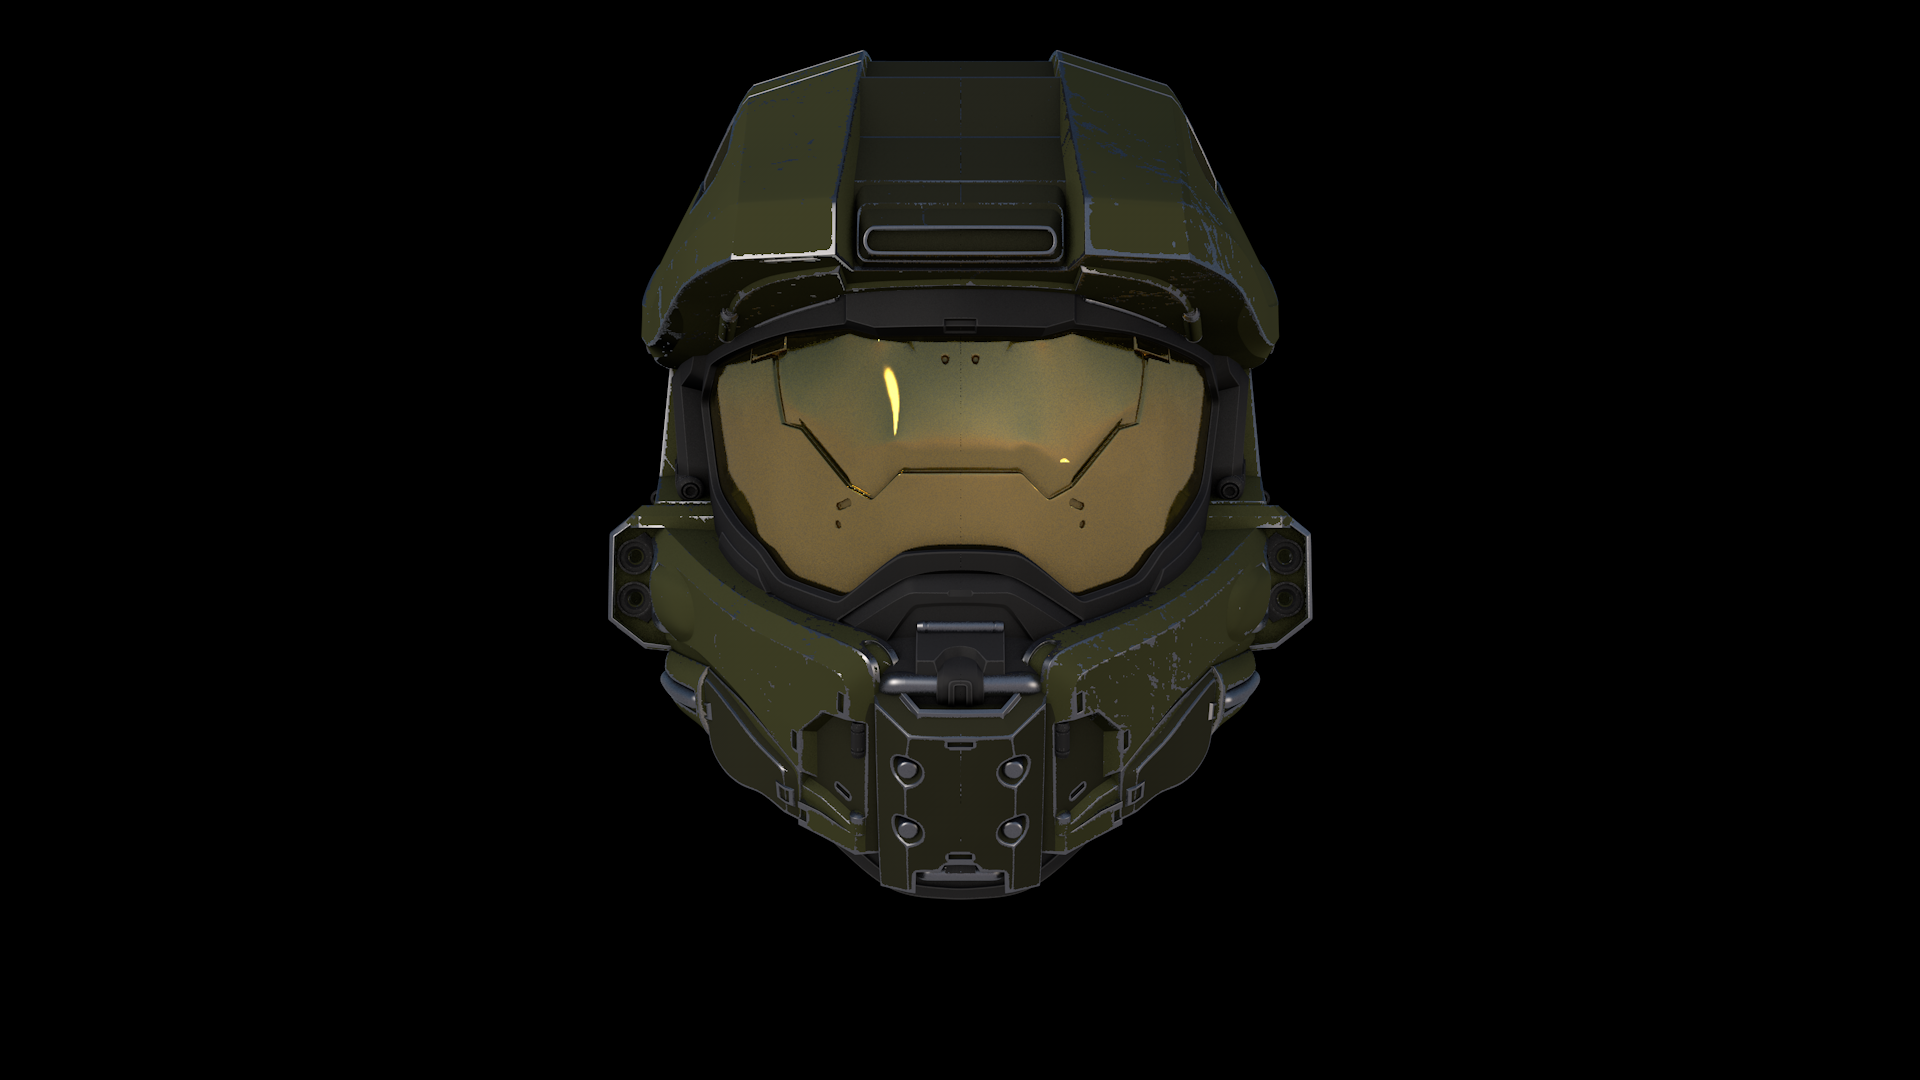 Halo 4 master chief helmet 3.png